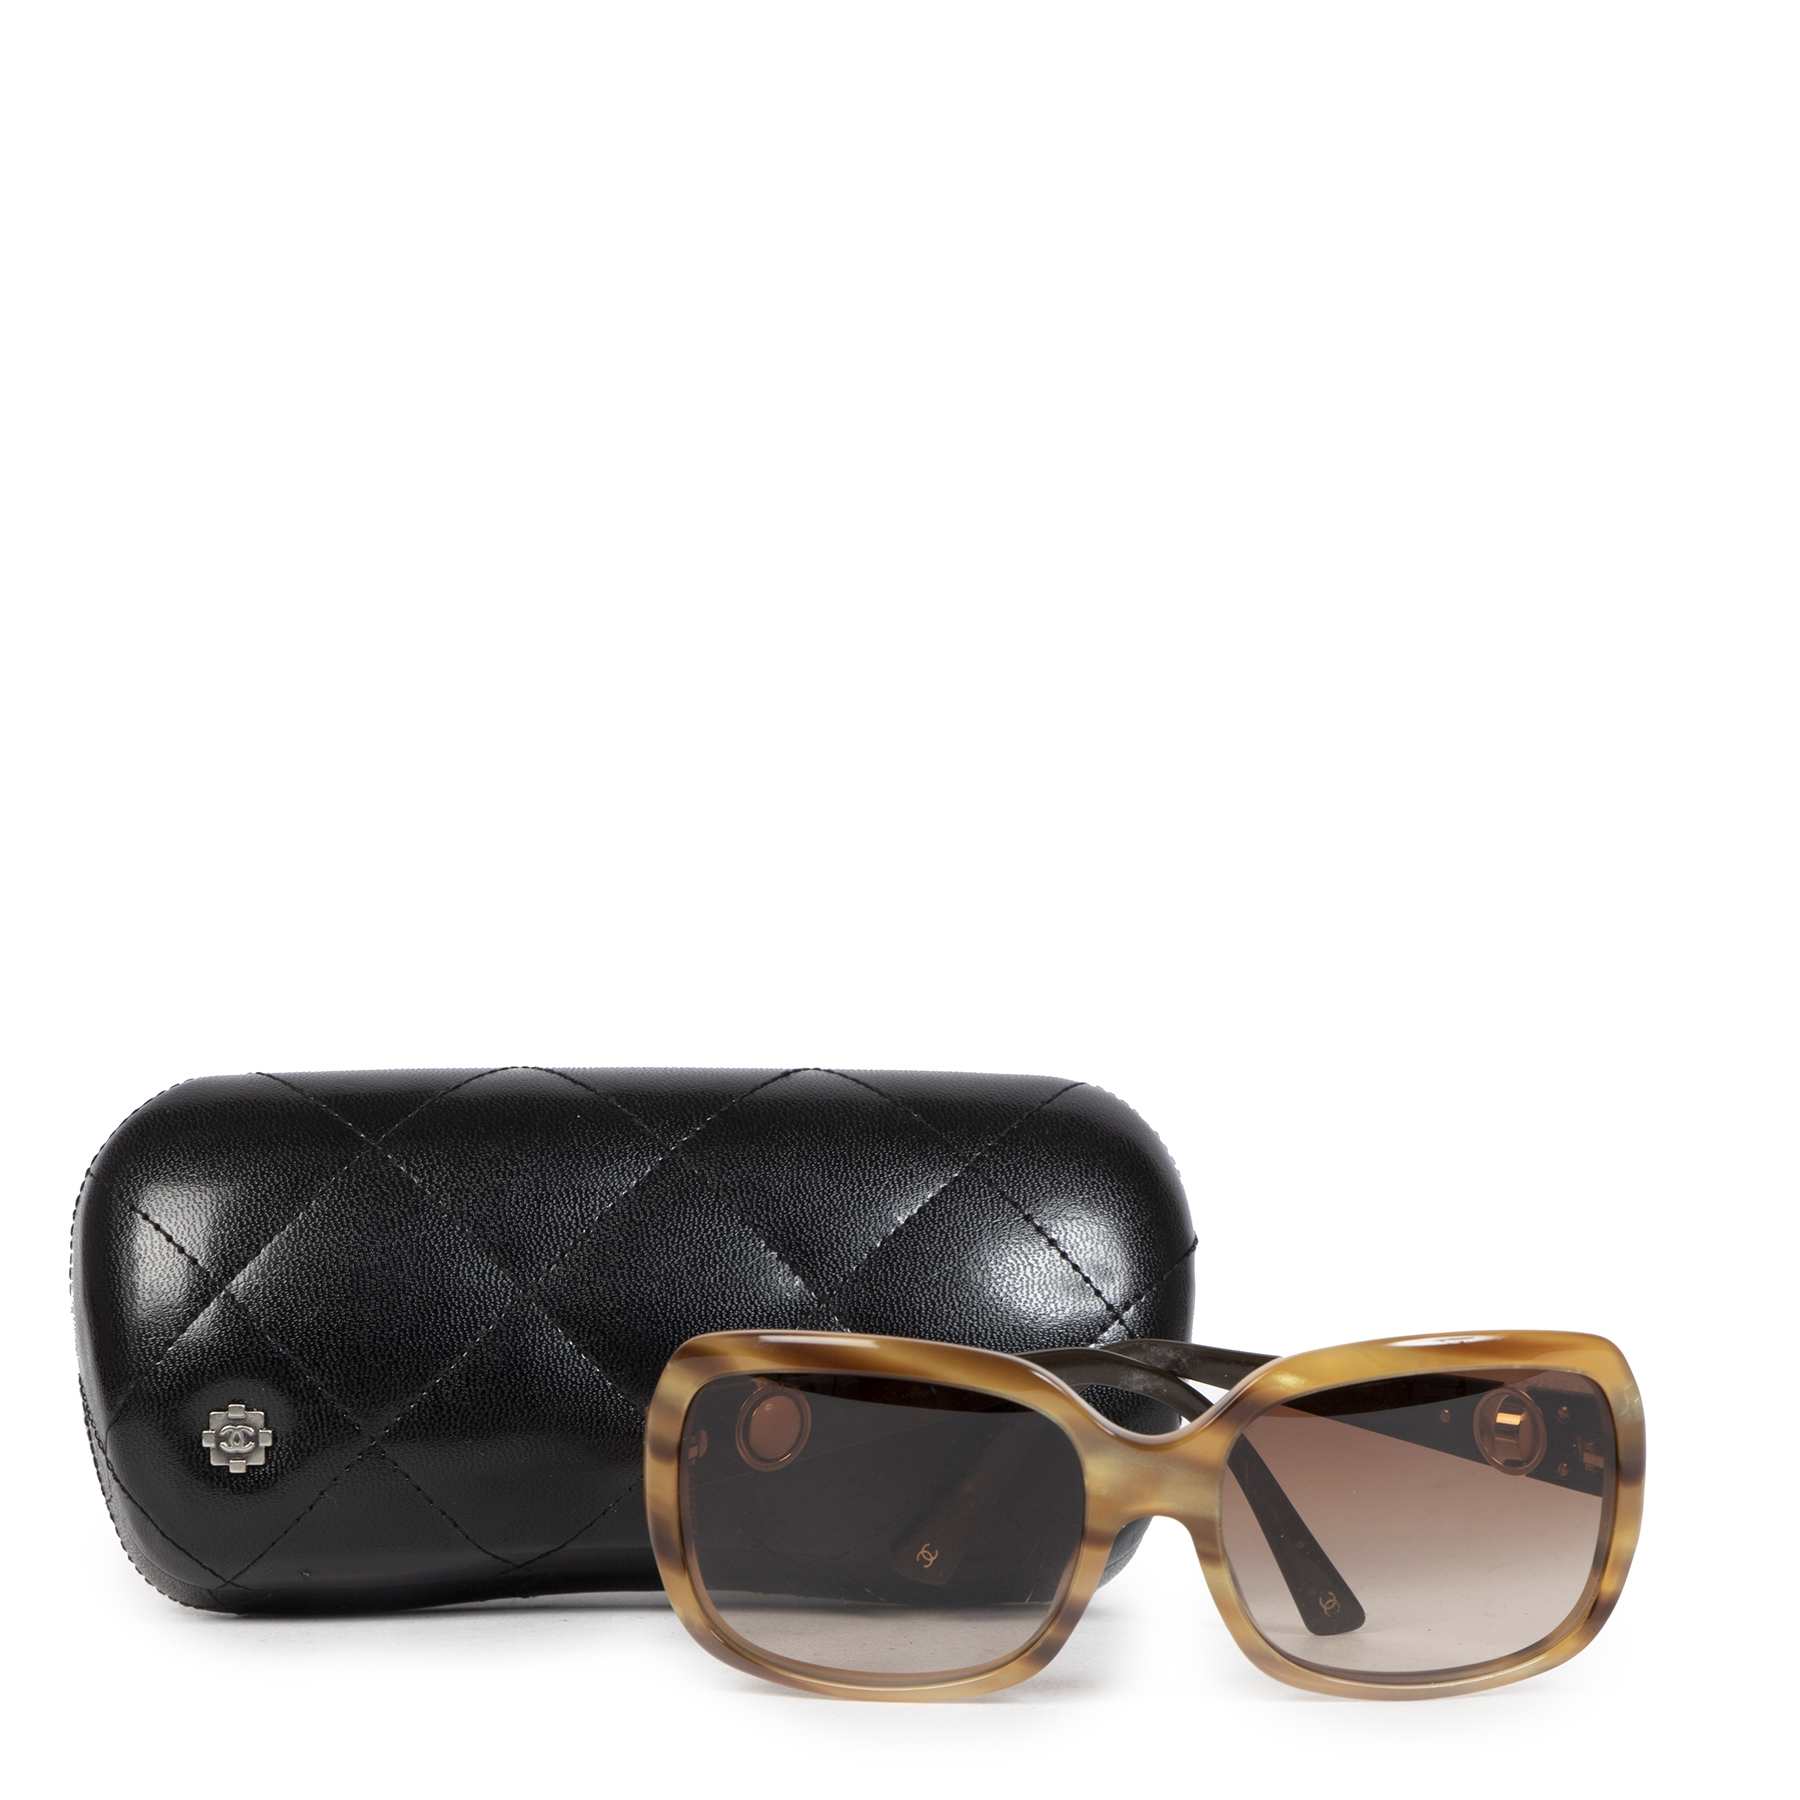 Authentic second-hand vintage Chanel Tortoise Square Sunglasses buy online webshop LabelLOV